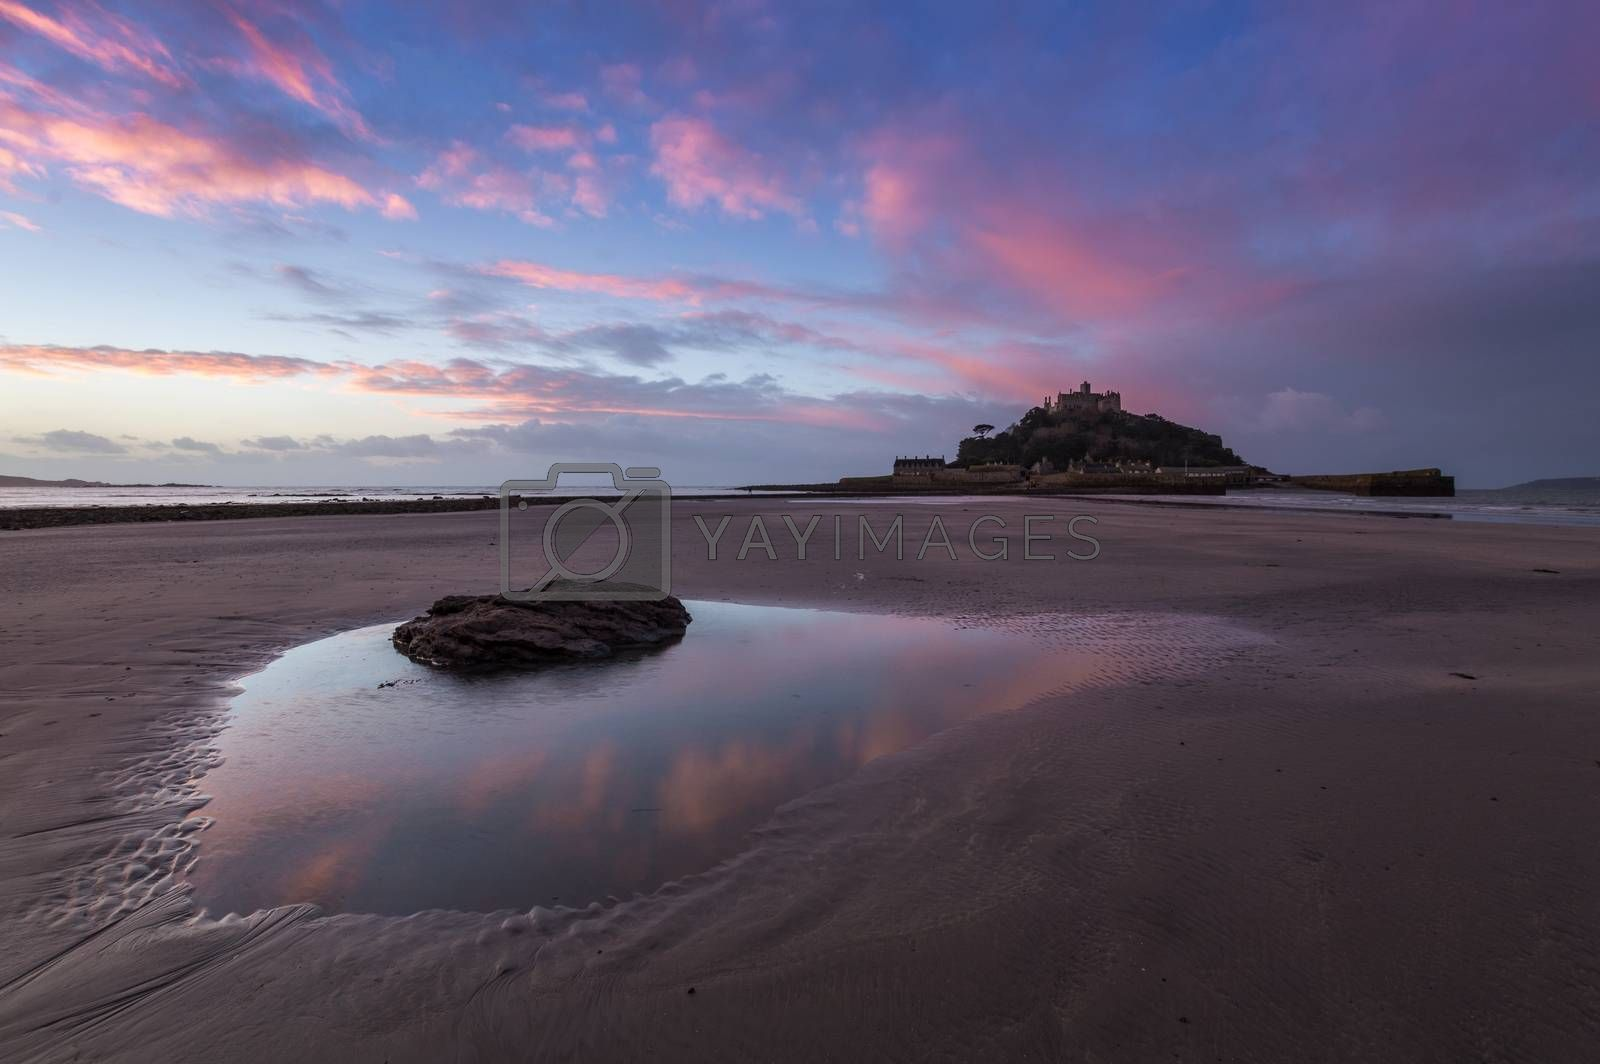 Royalty free image of Beach in Front of St Michael's Mount by margaret_clavell